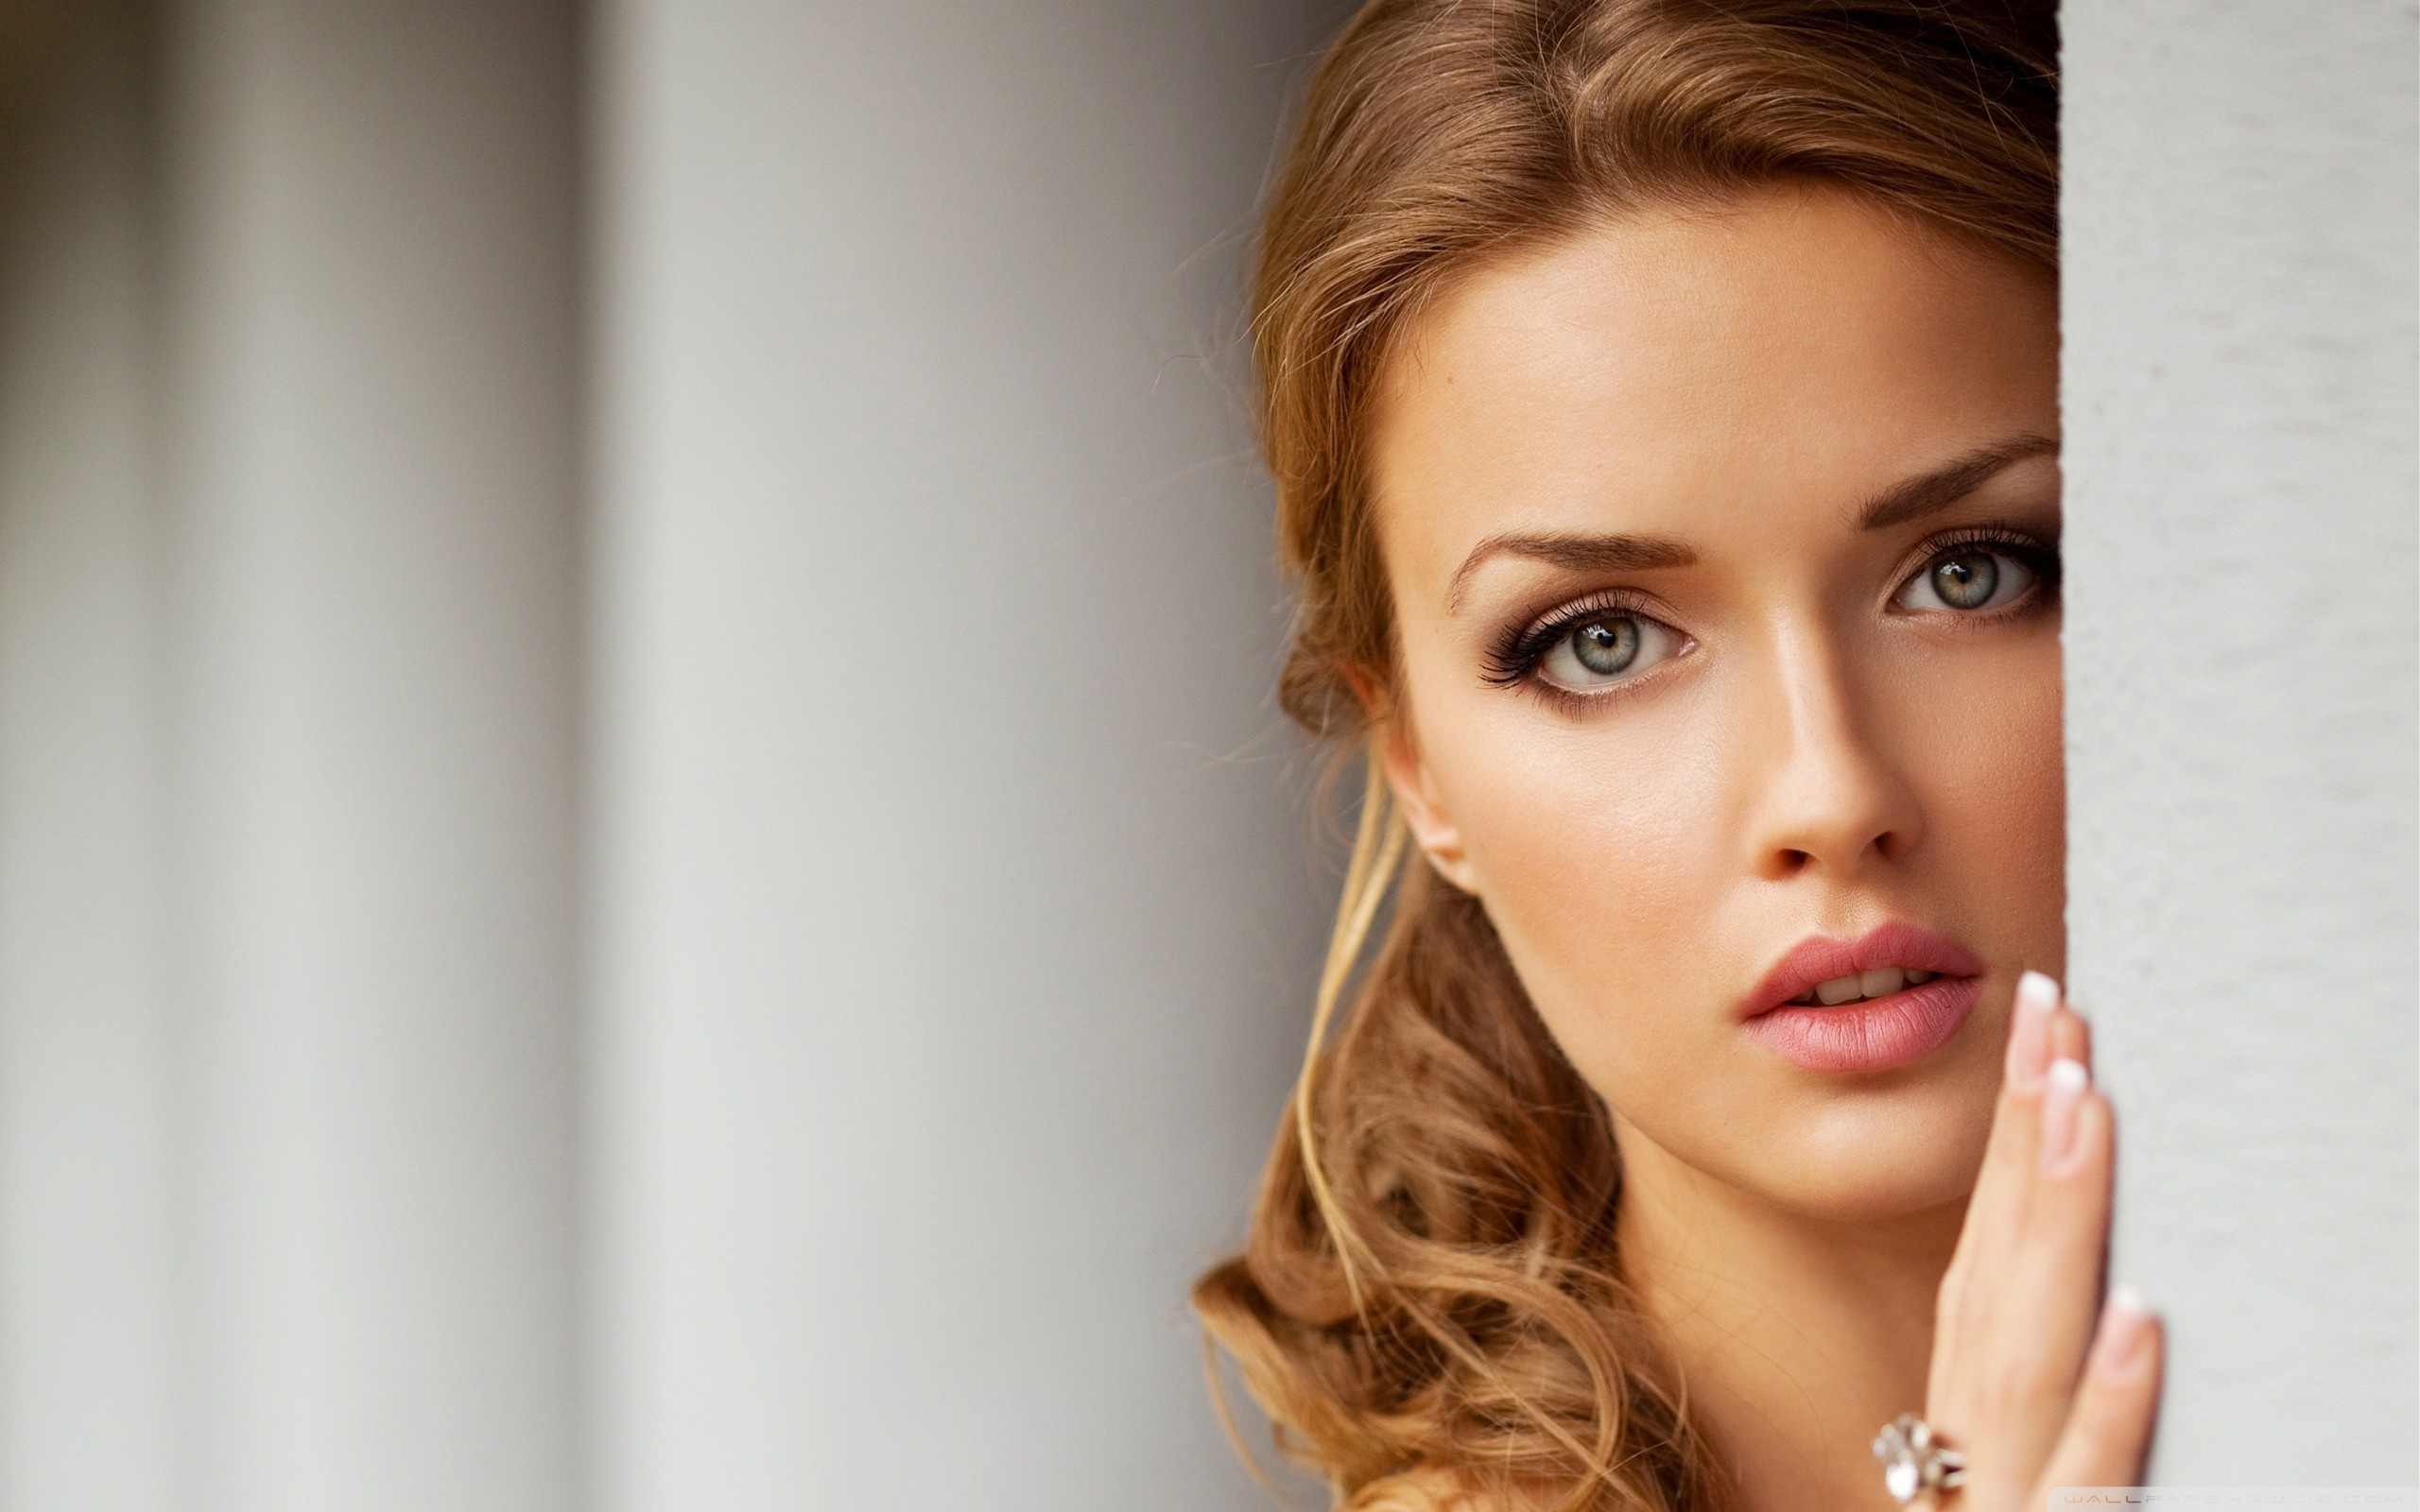 Beautiful Women Wallpaper